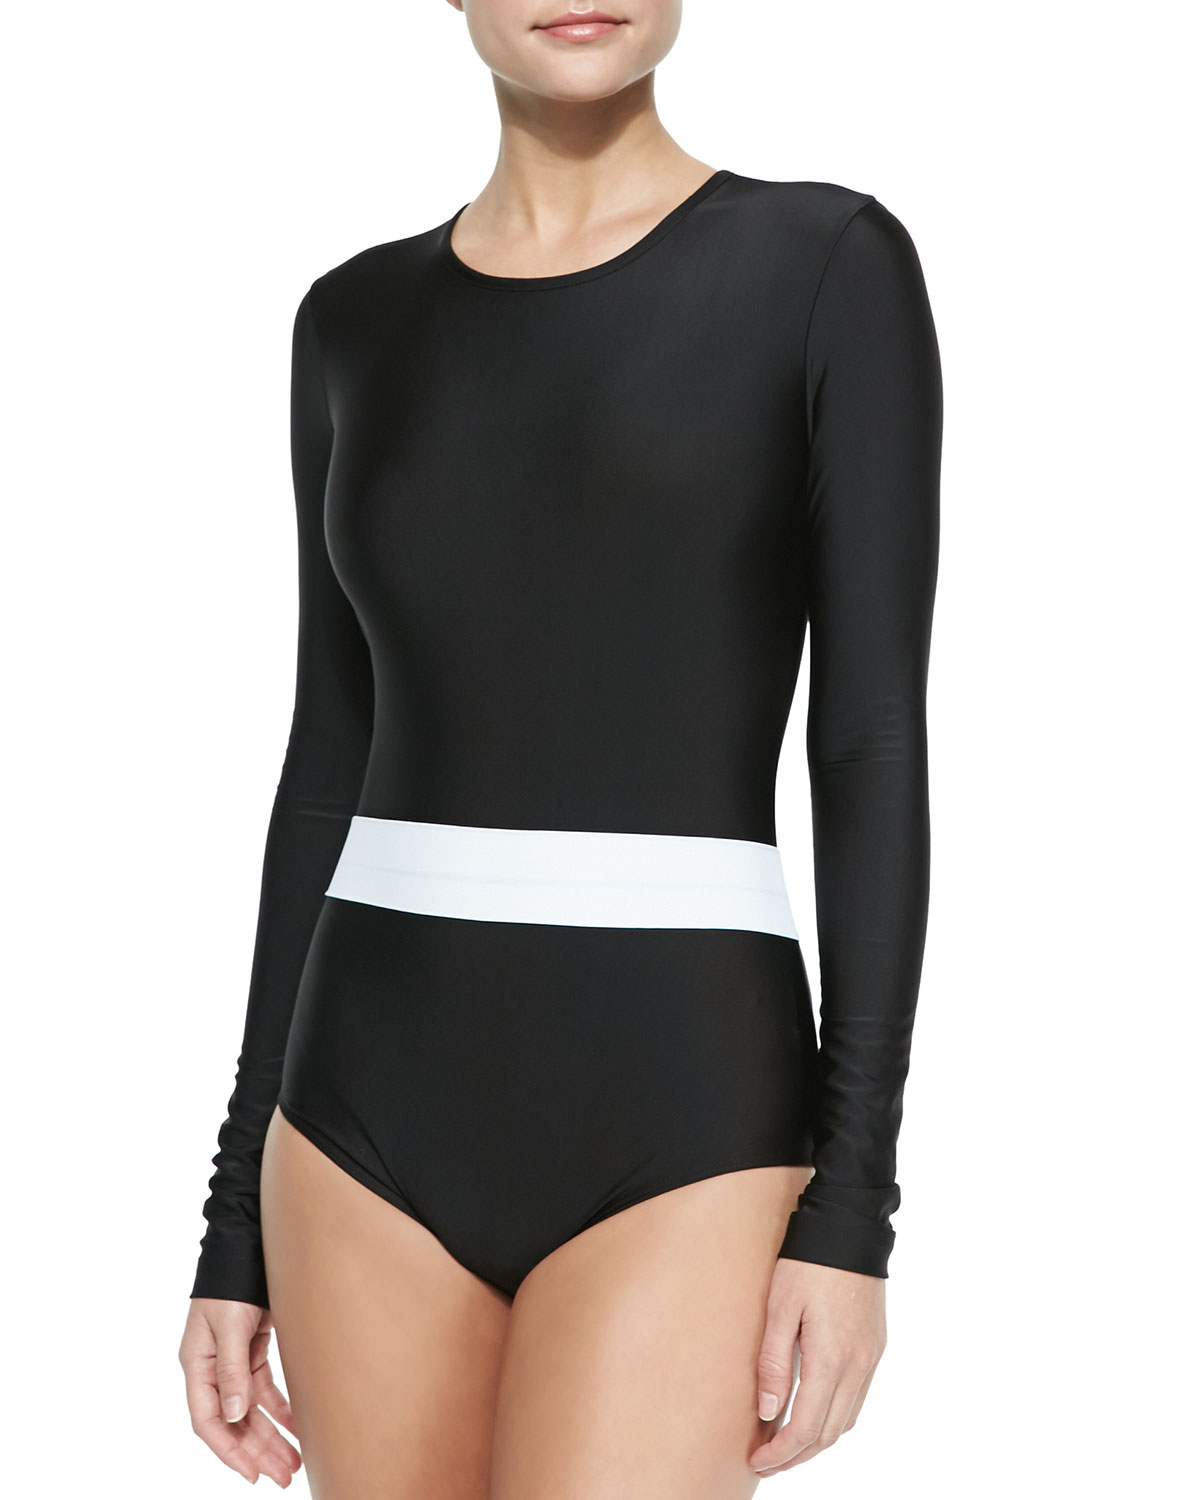 f9994d5c297d6 Quick Look. Cover · Long-Sleeve One-Piece Swimsuit